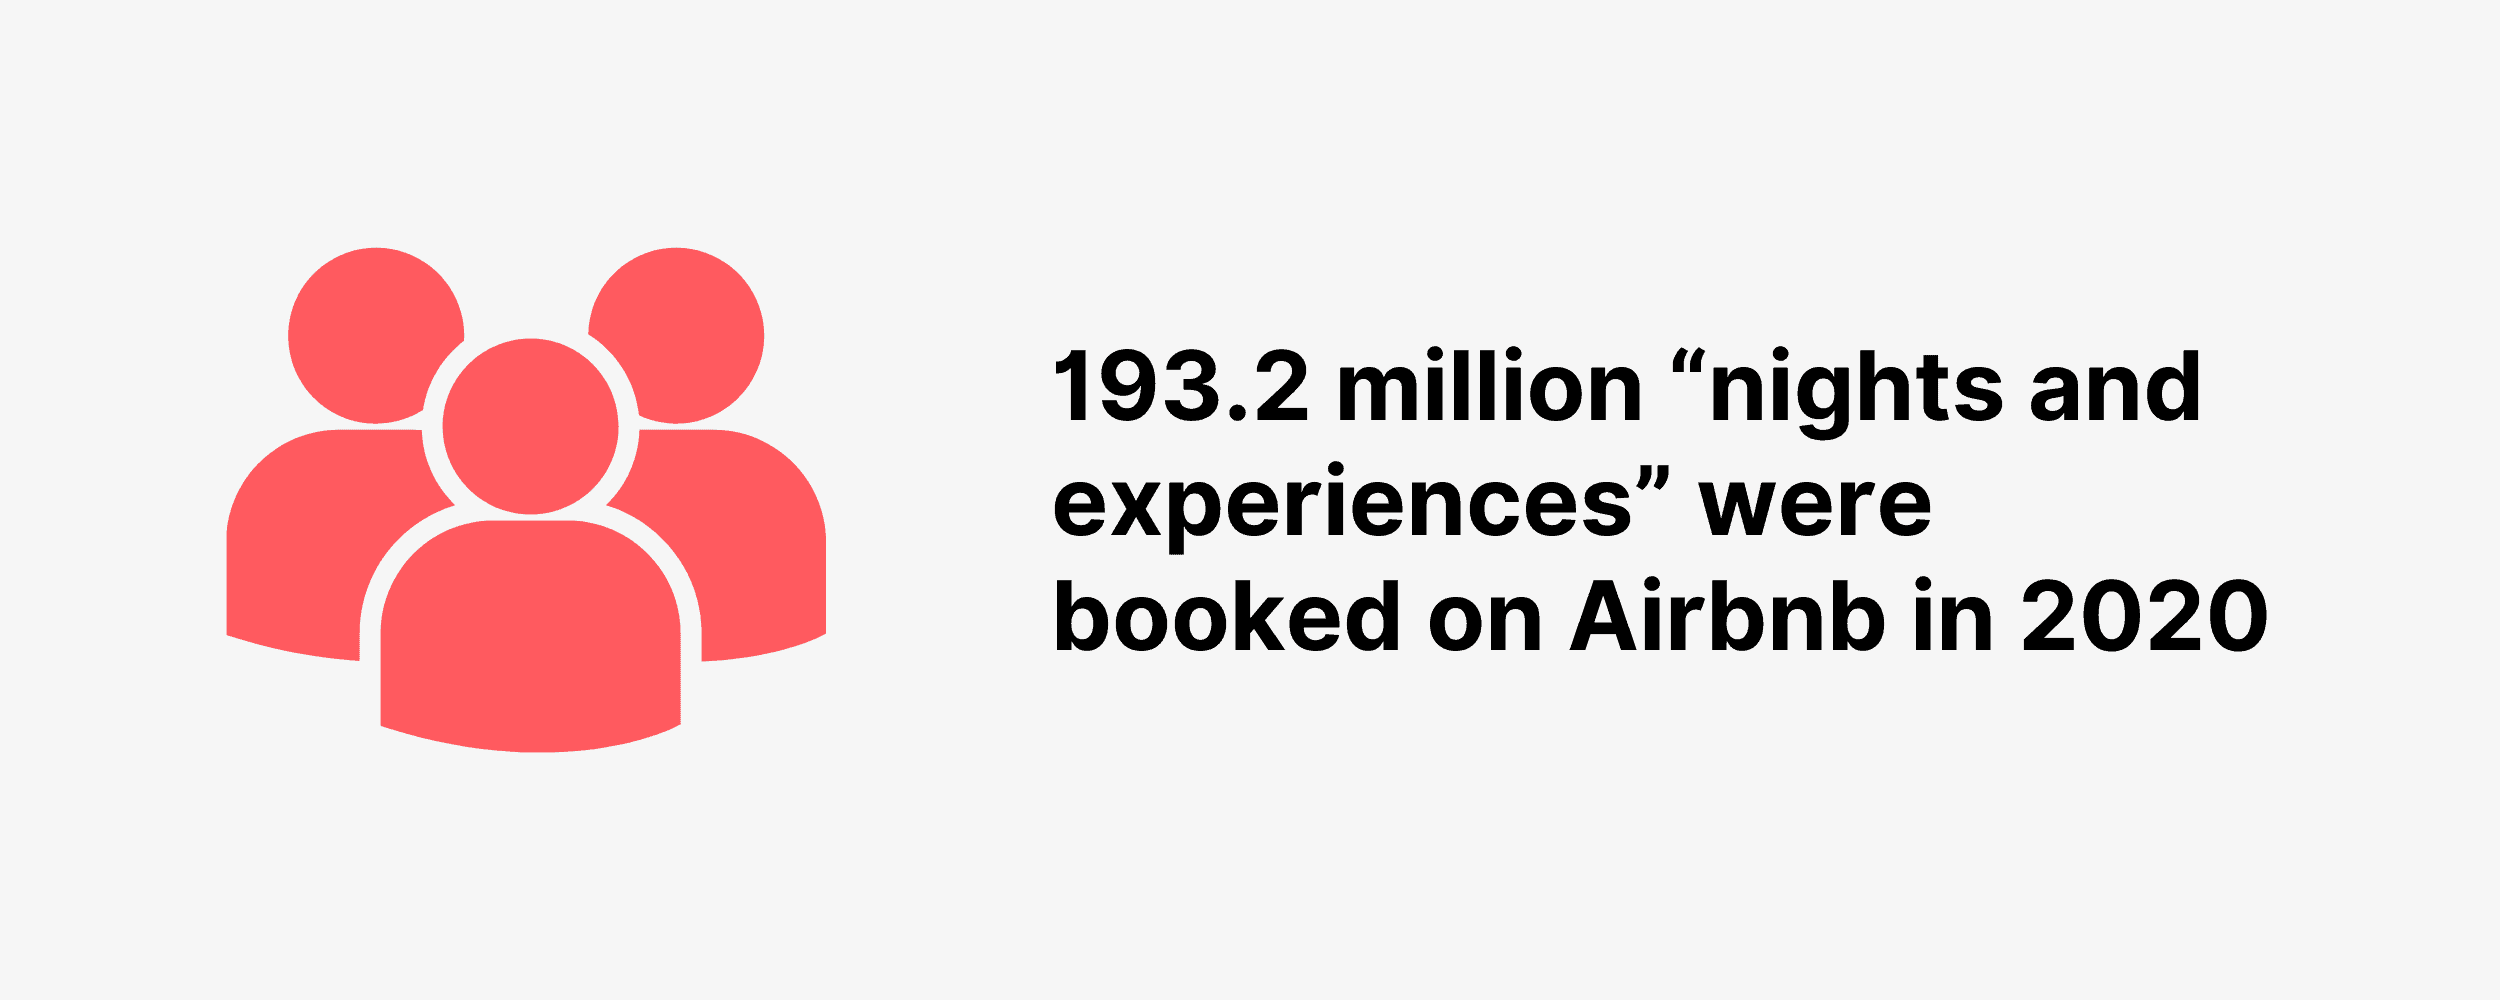 """193.2 million """"nights and experiences"""" were booked on Airbnb in 2020"""